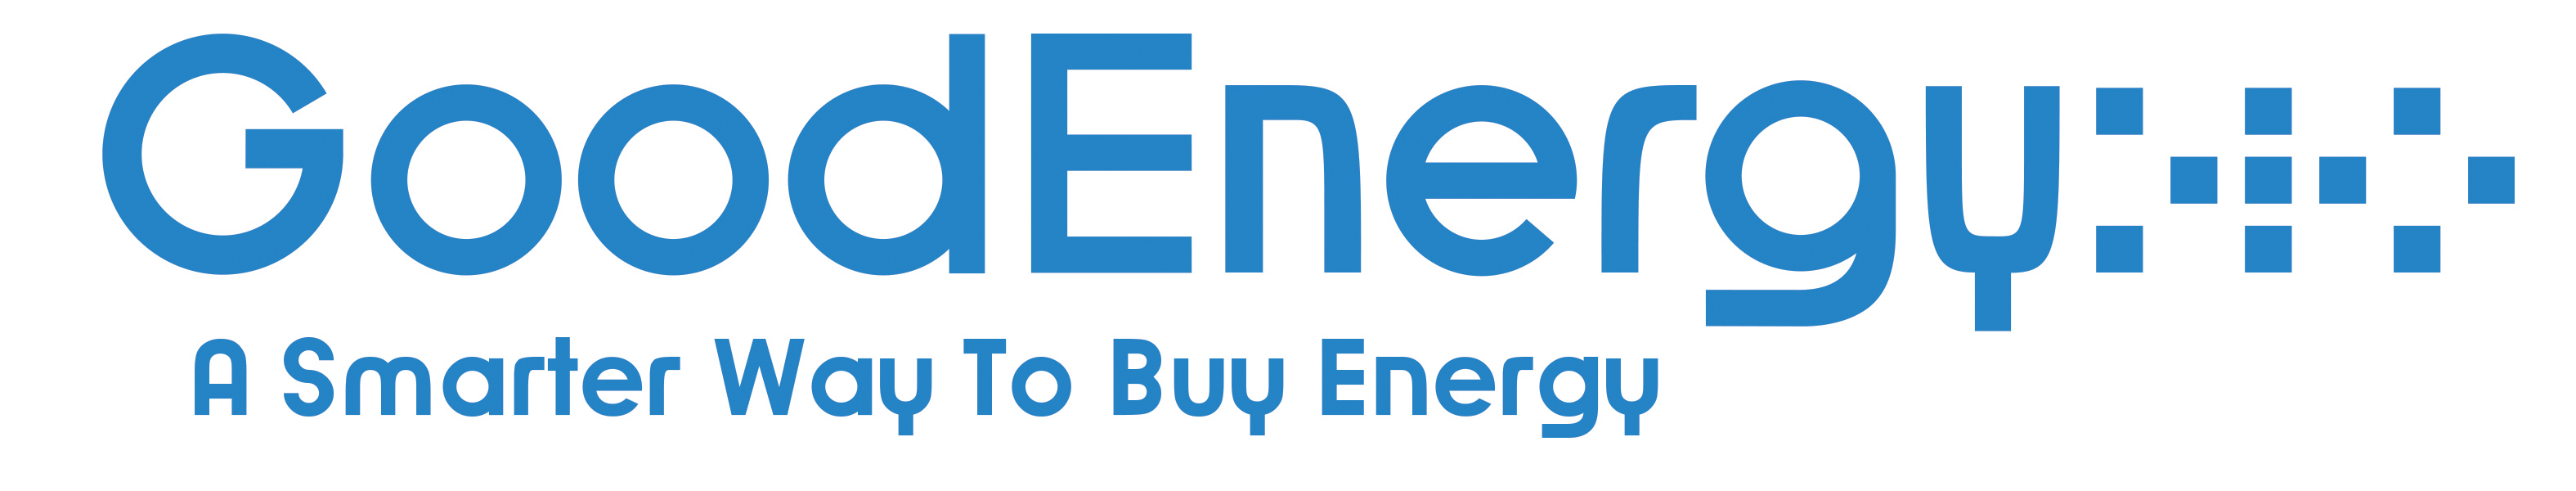 Good Energy logo solidweb